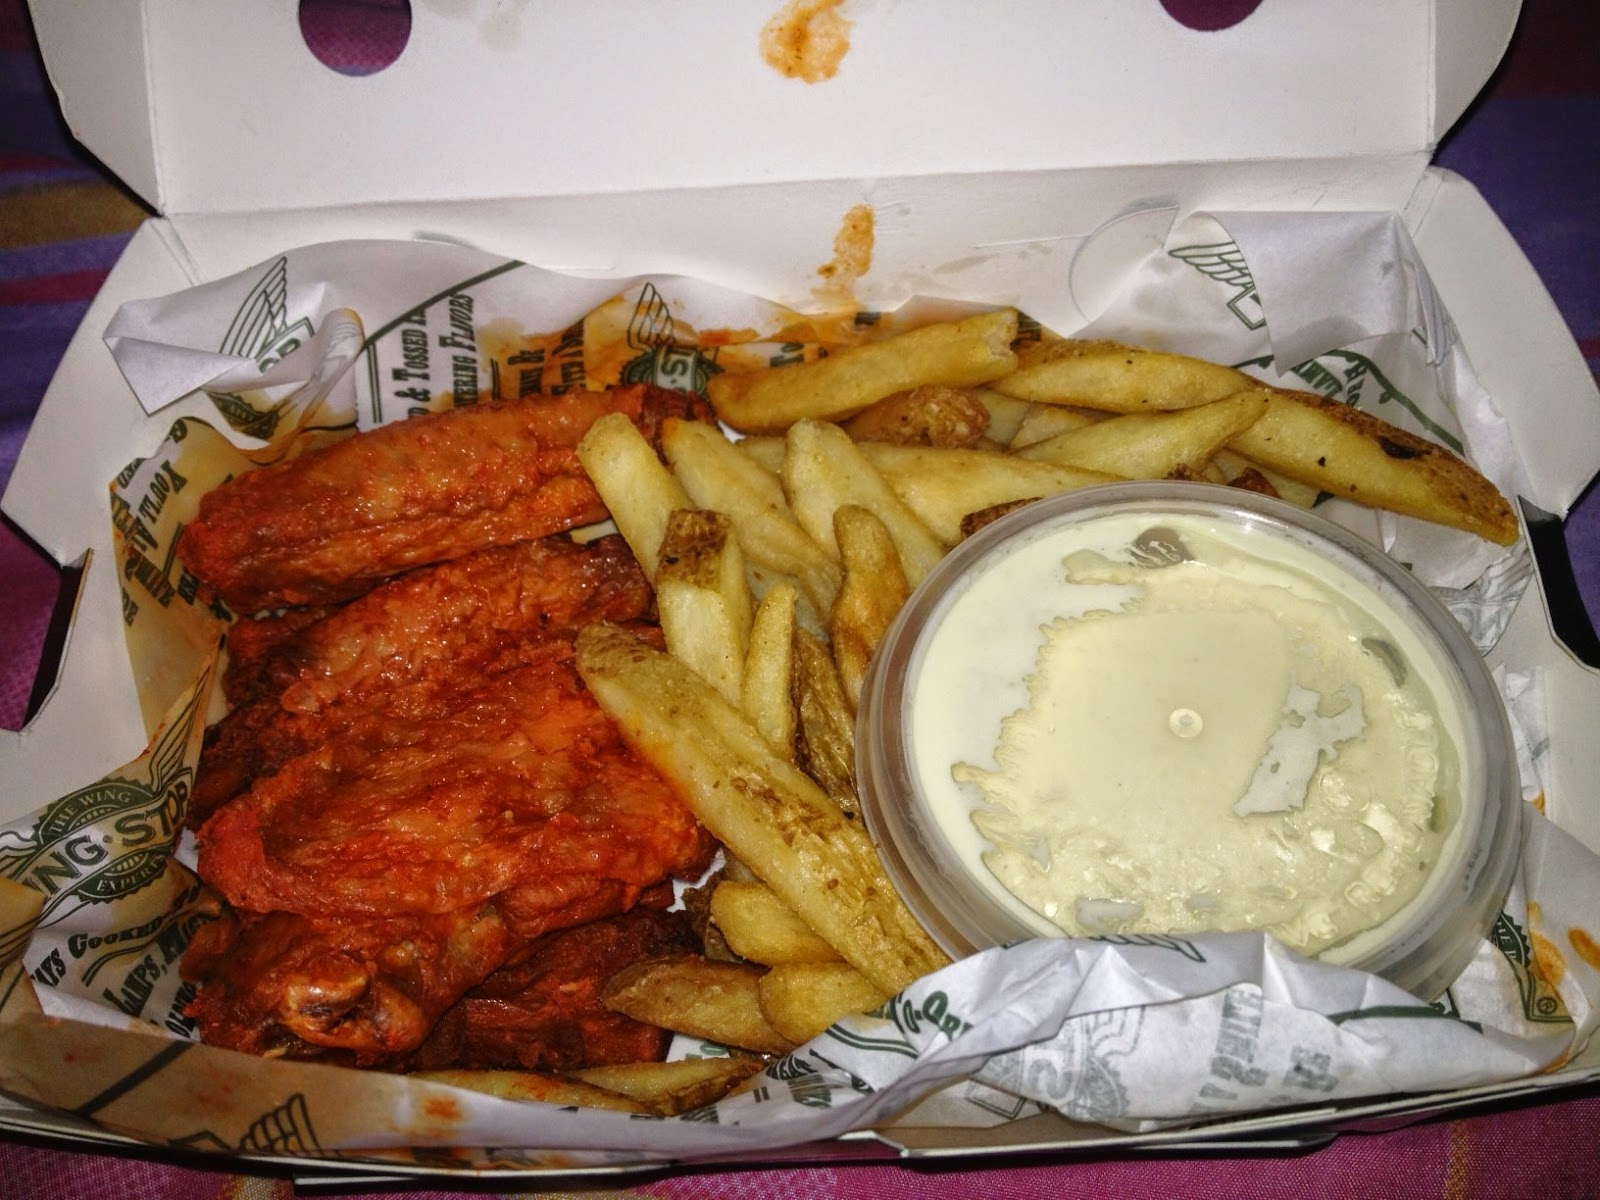 Original Hot Buffalo Chicken Wings with Fries as Sides & Bleu Cheese Dip